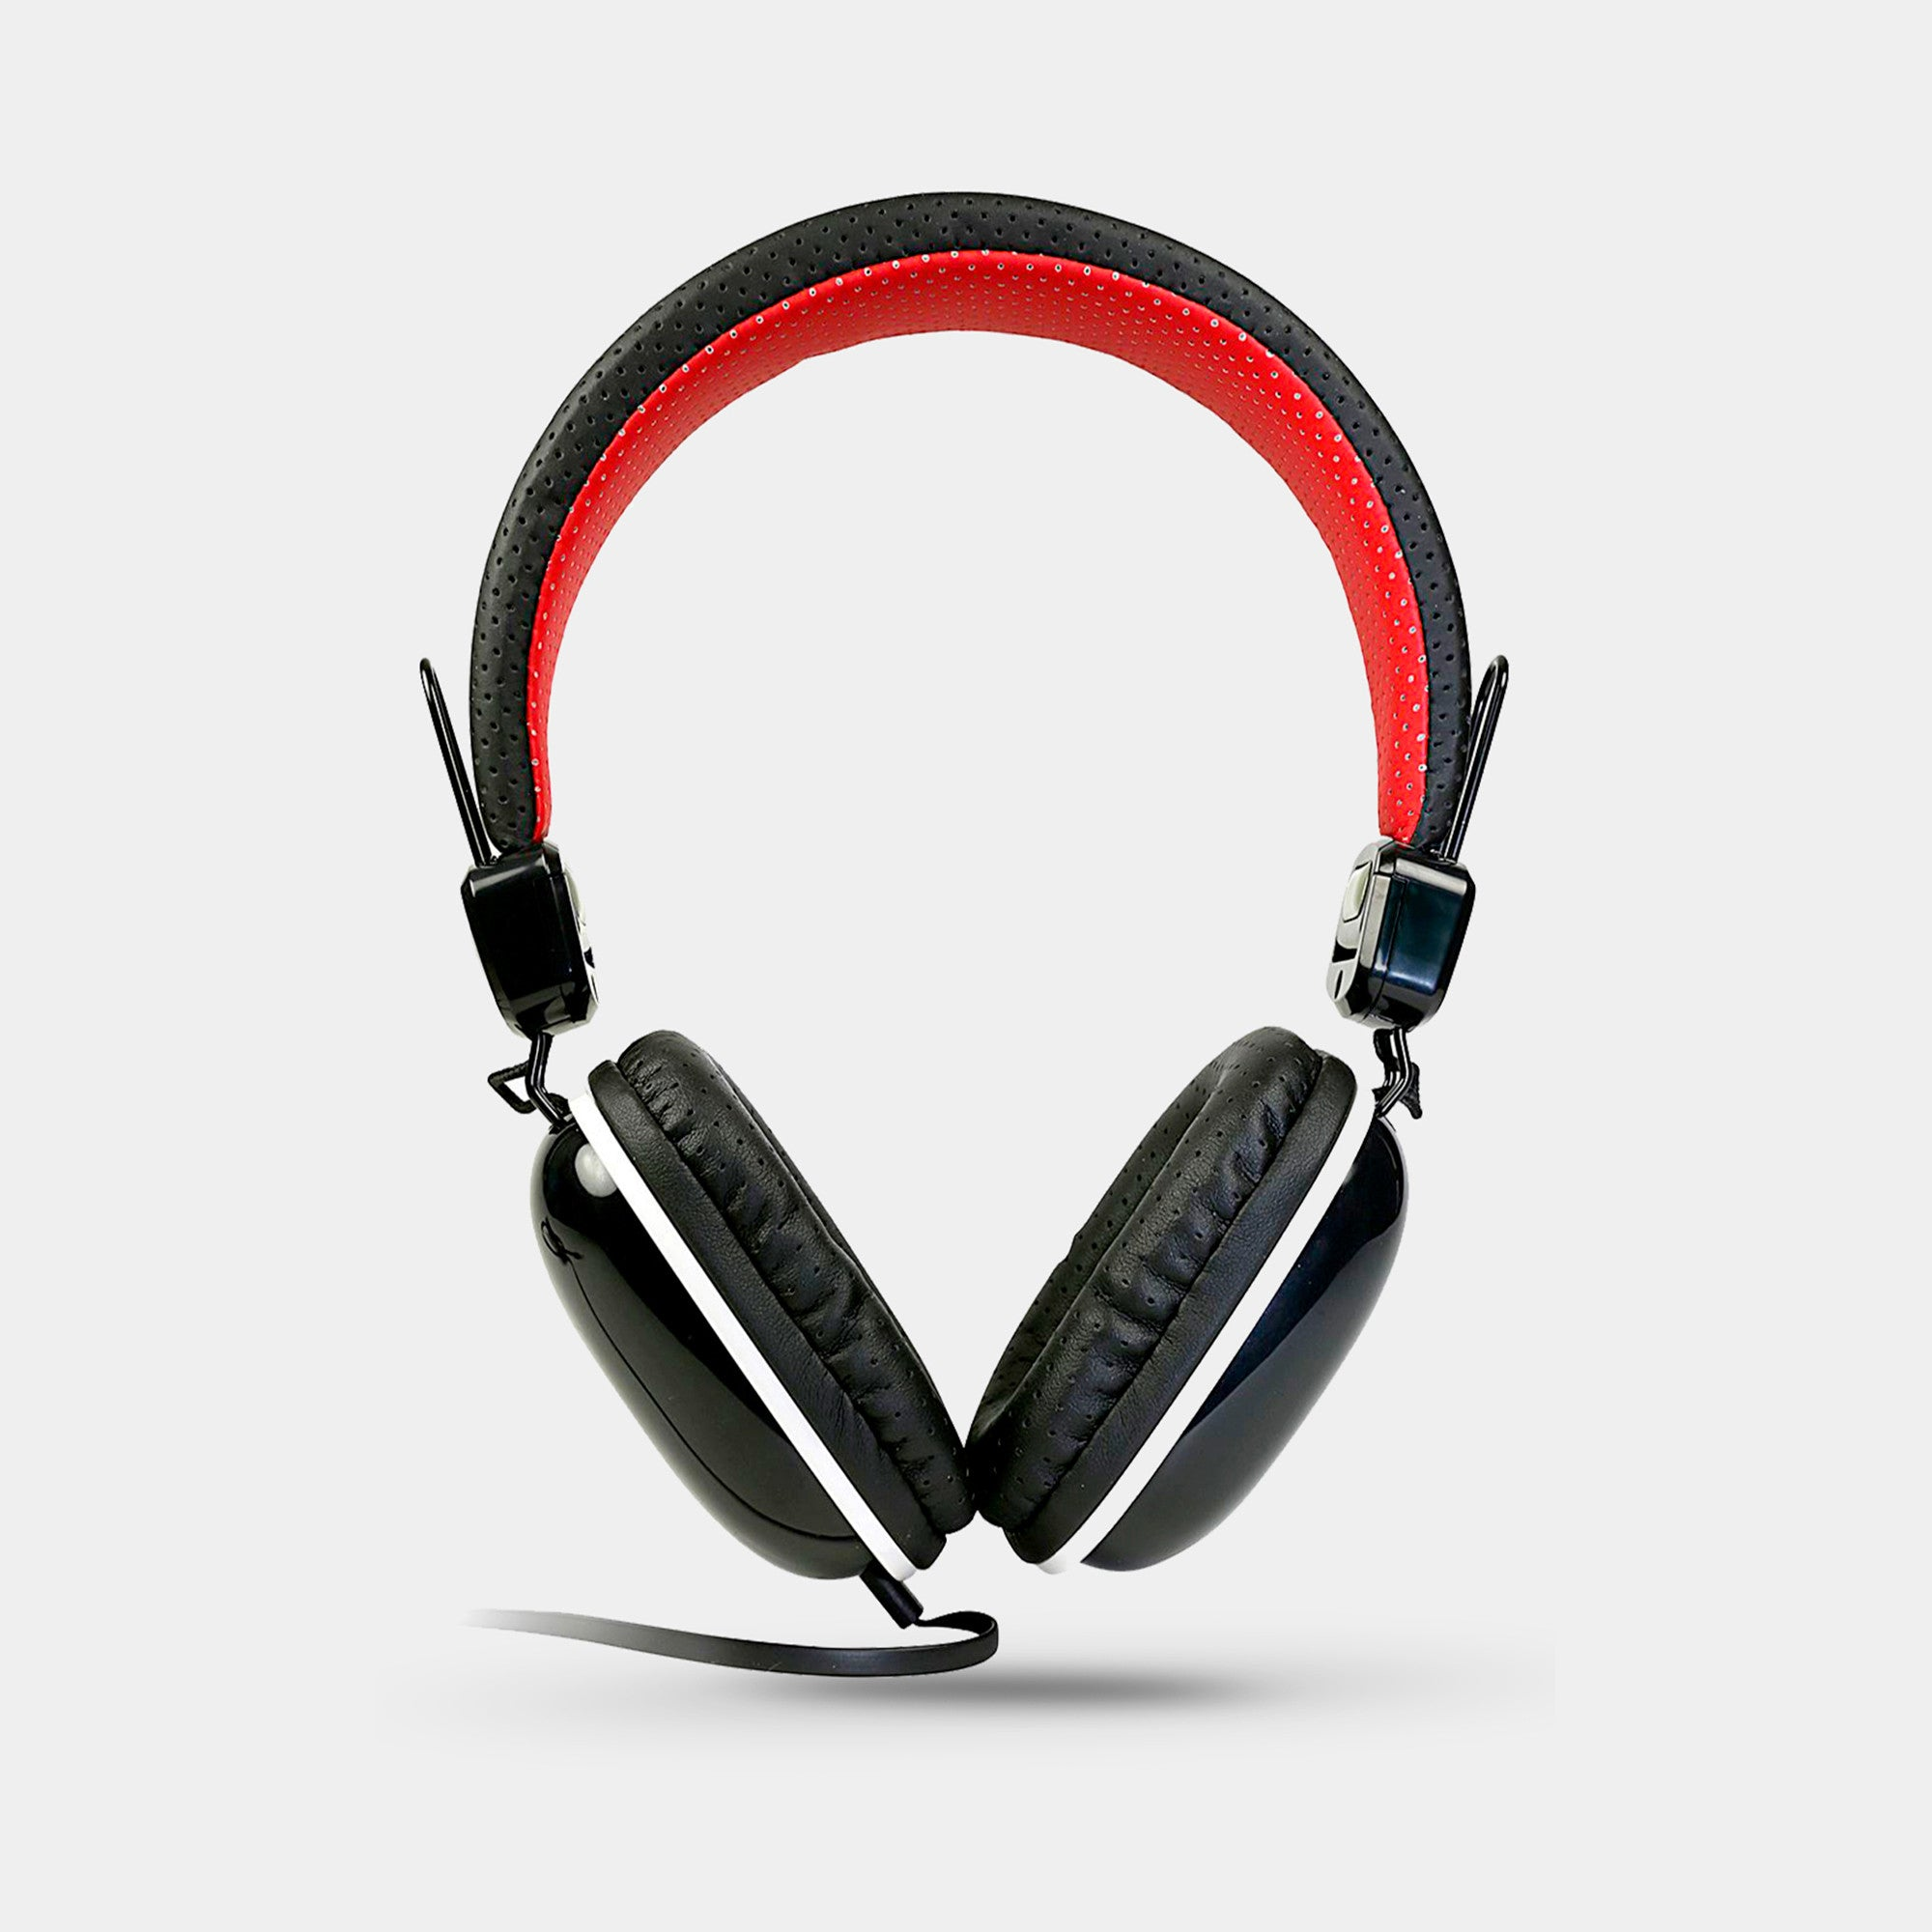 NUSOUND RETRO STUDIO DJ Foldable Headphone